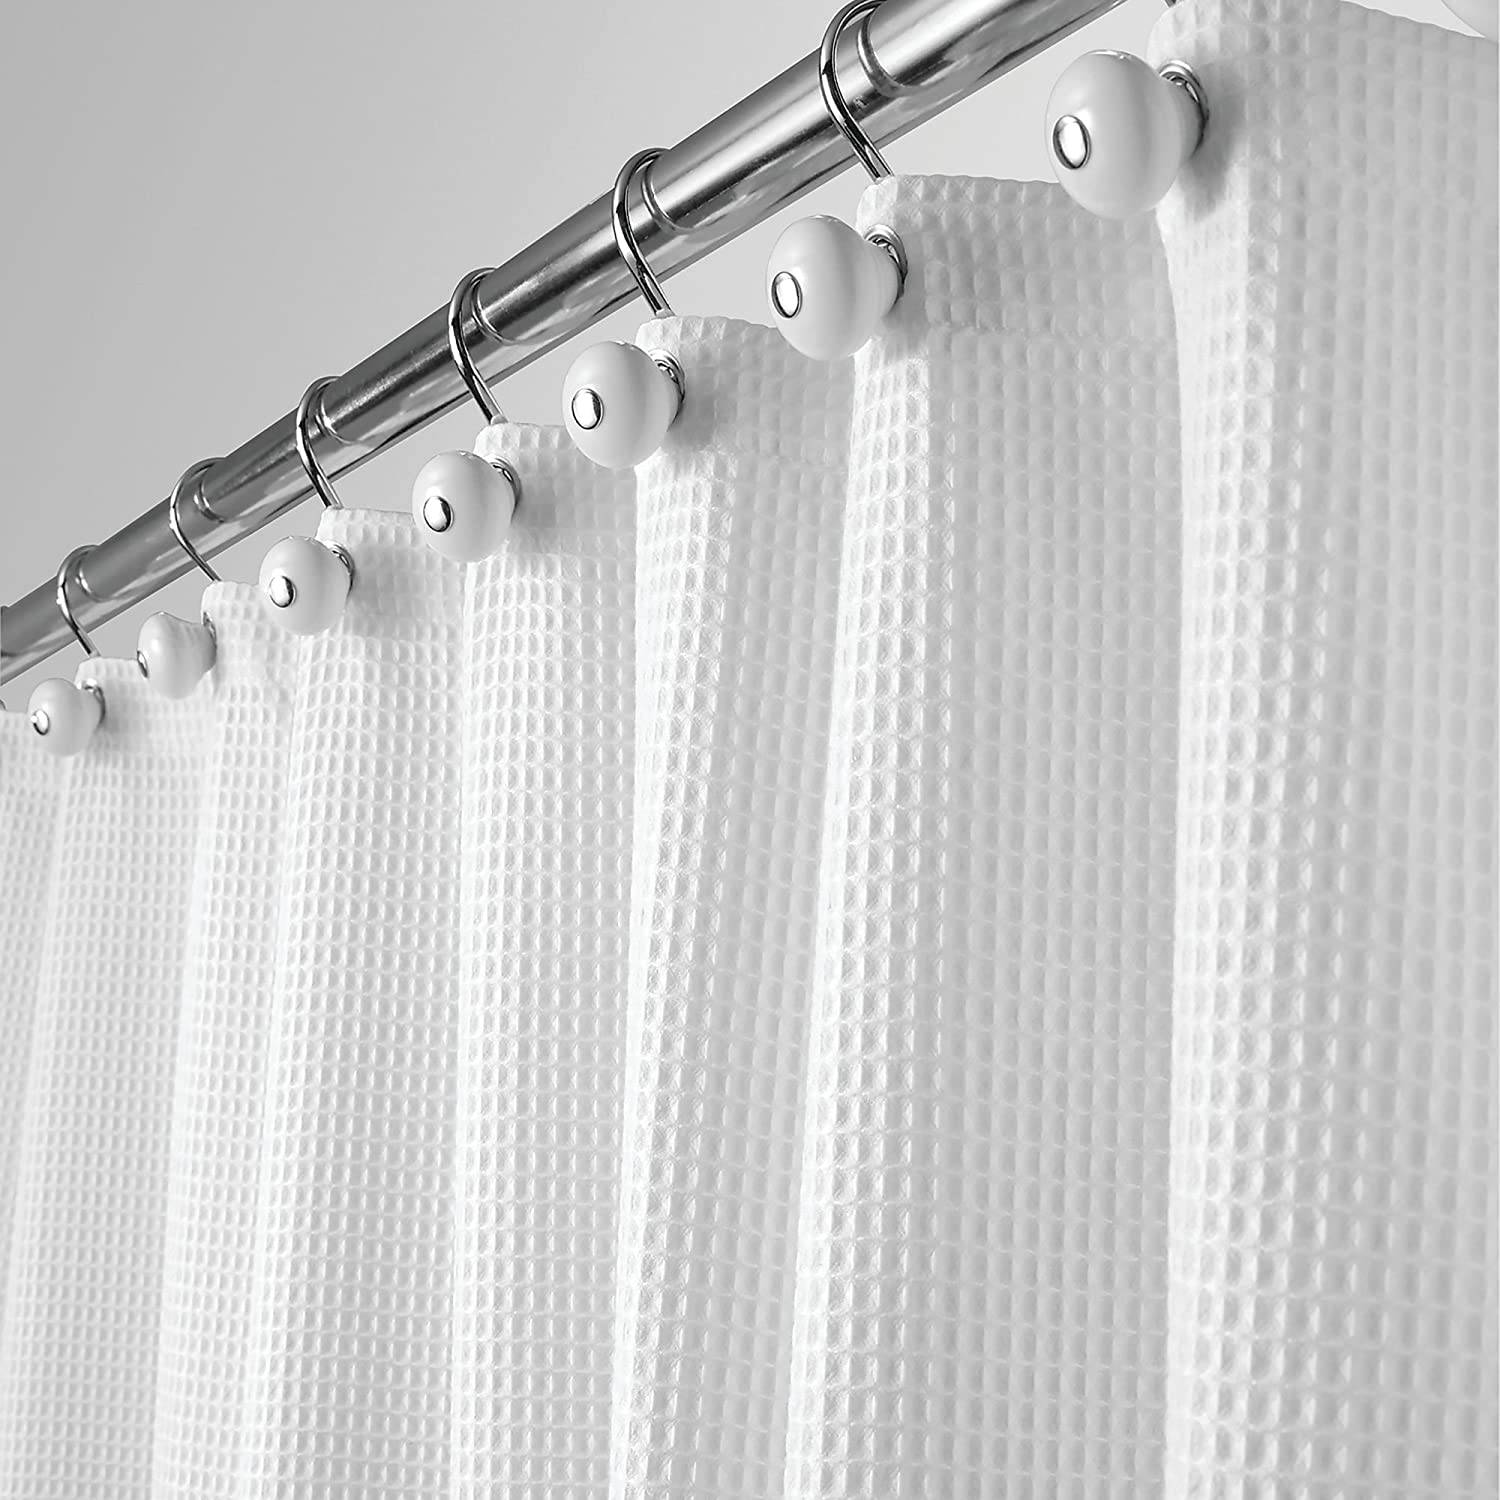 mDesign Extra Long Hotel Quality Polyester/Cotton Blend Fabric Shower Curtain, Rustproof Metal Grommets - Waffle Weave Bathroom Showers Bathtubs - 72 x 96 - White MetroDecor